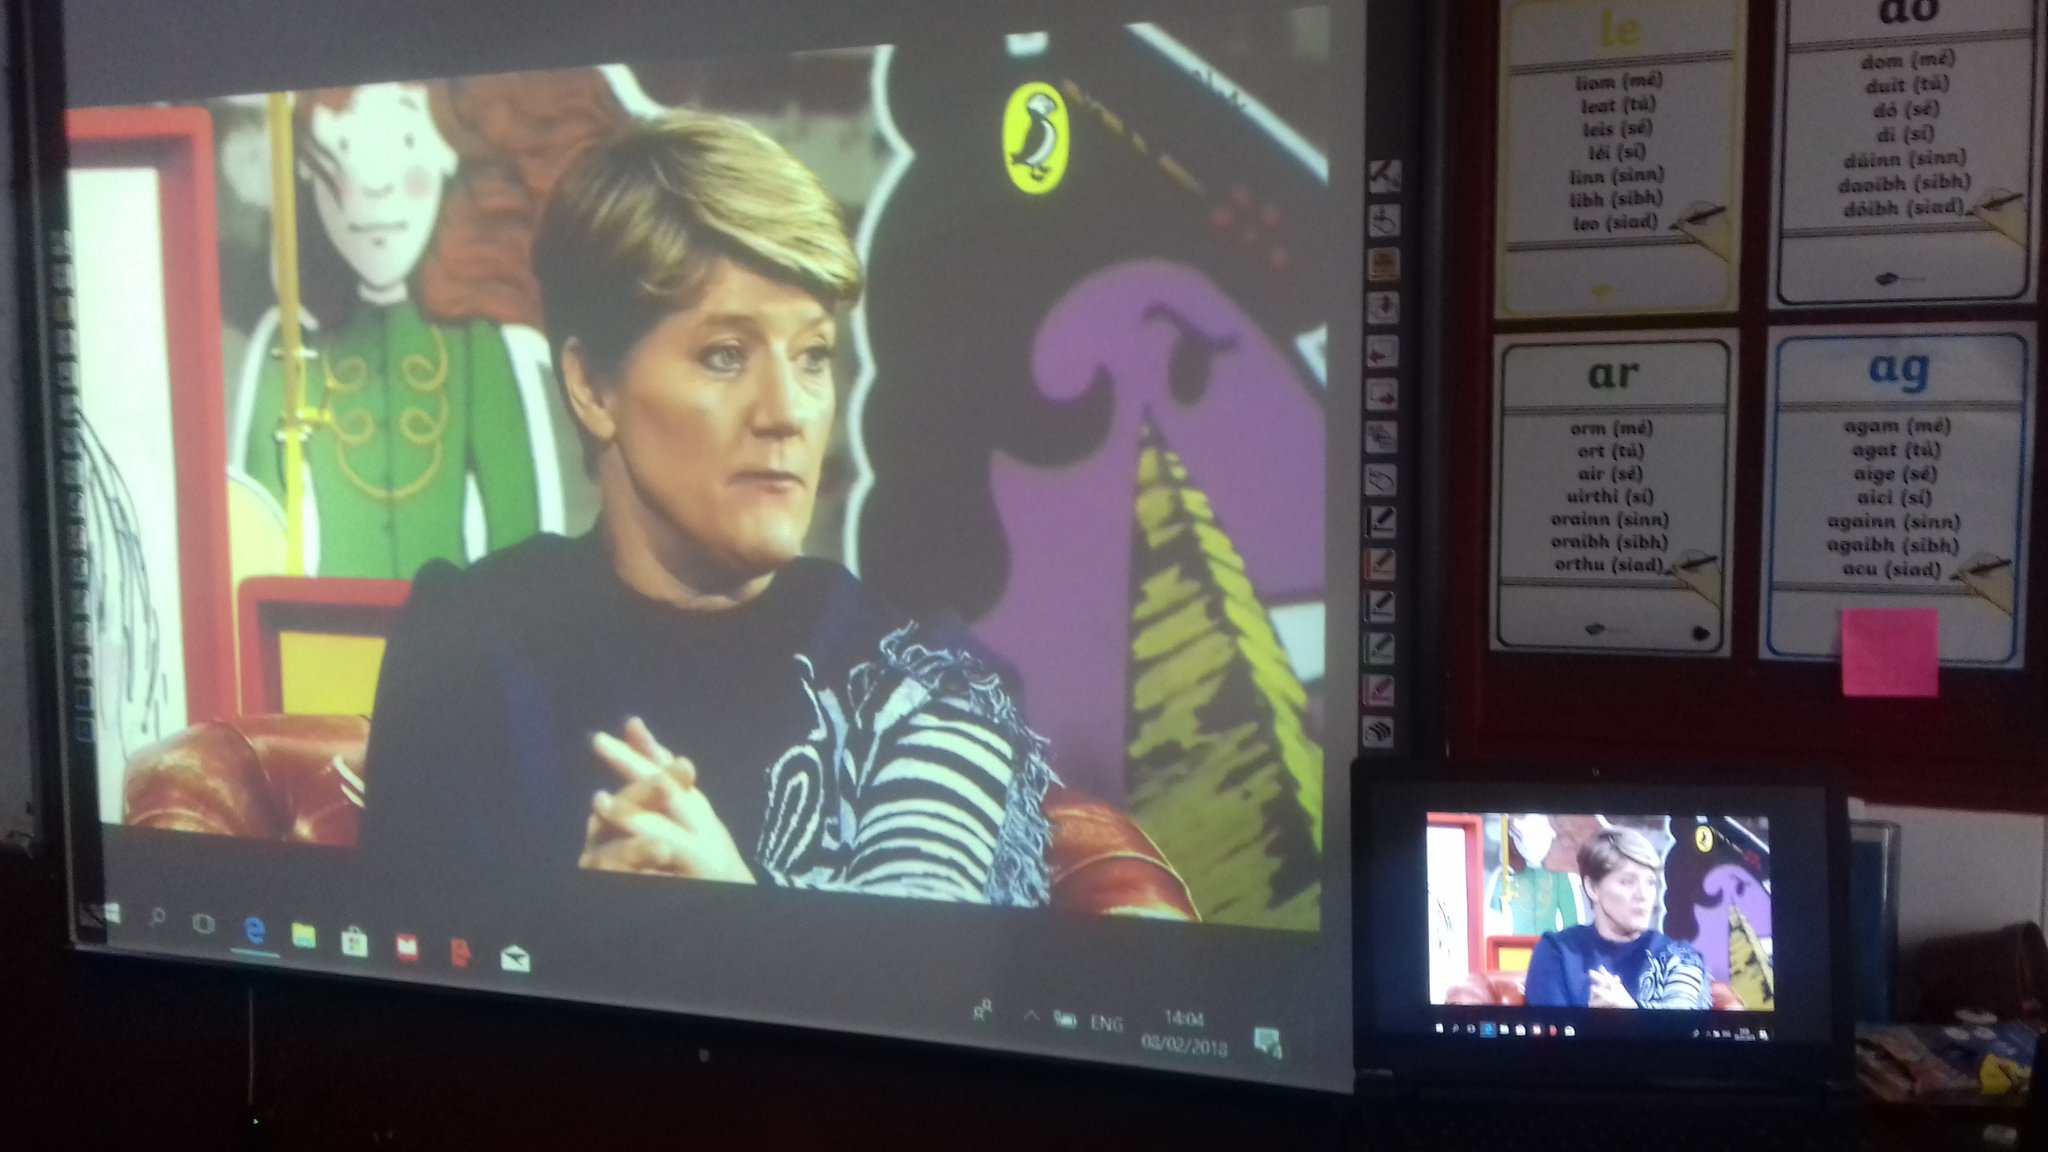 Cloughfin NS On Twitter We Are Listening To Author Clarebalding Puffin Virtually Live Ellie In 5th Class Is Currently Reading One Of Her Books